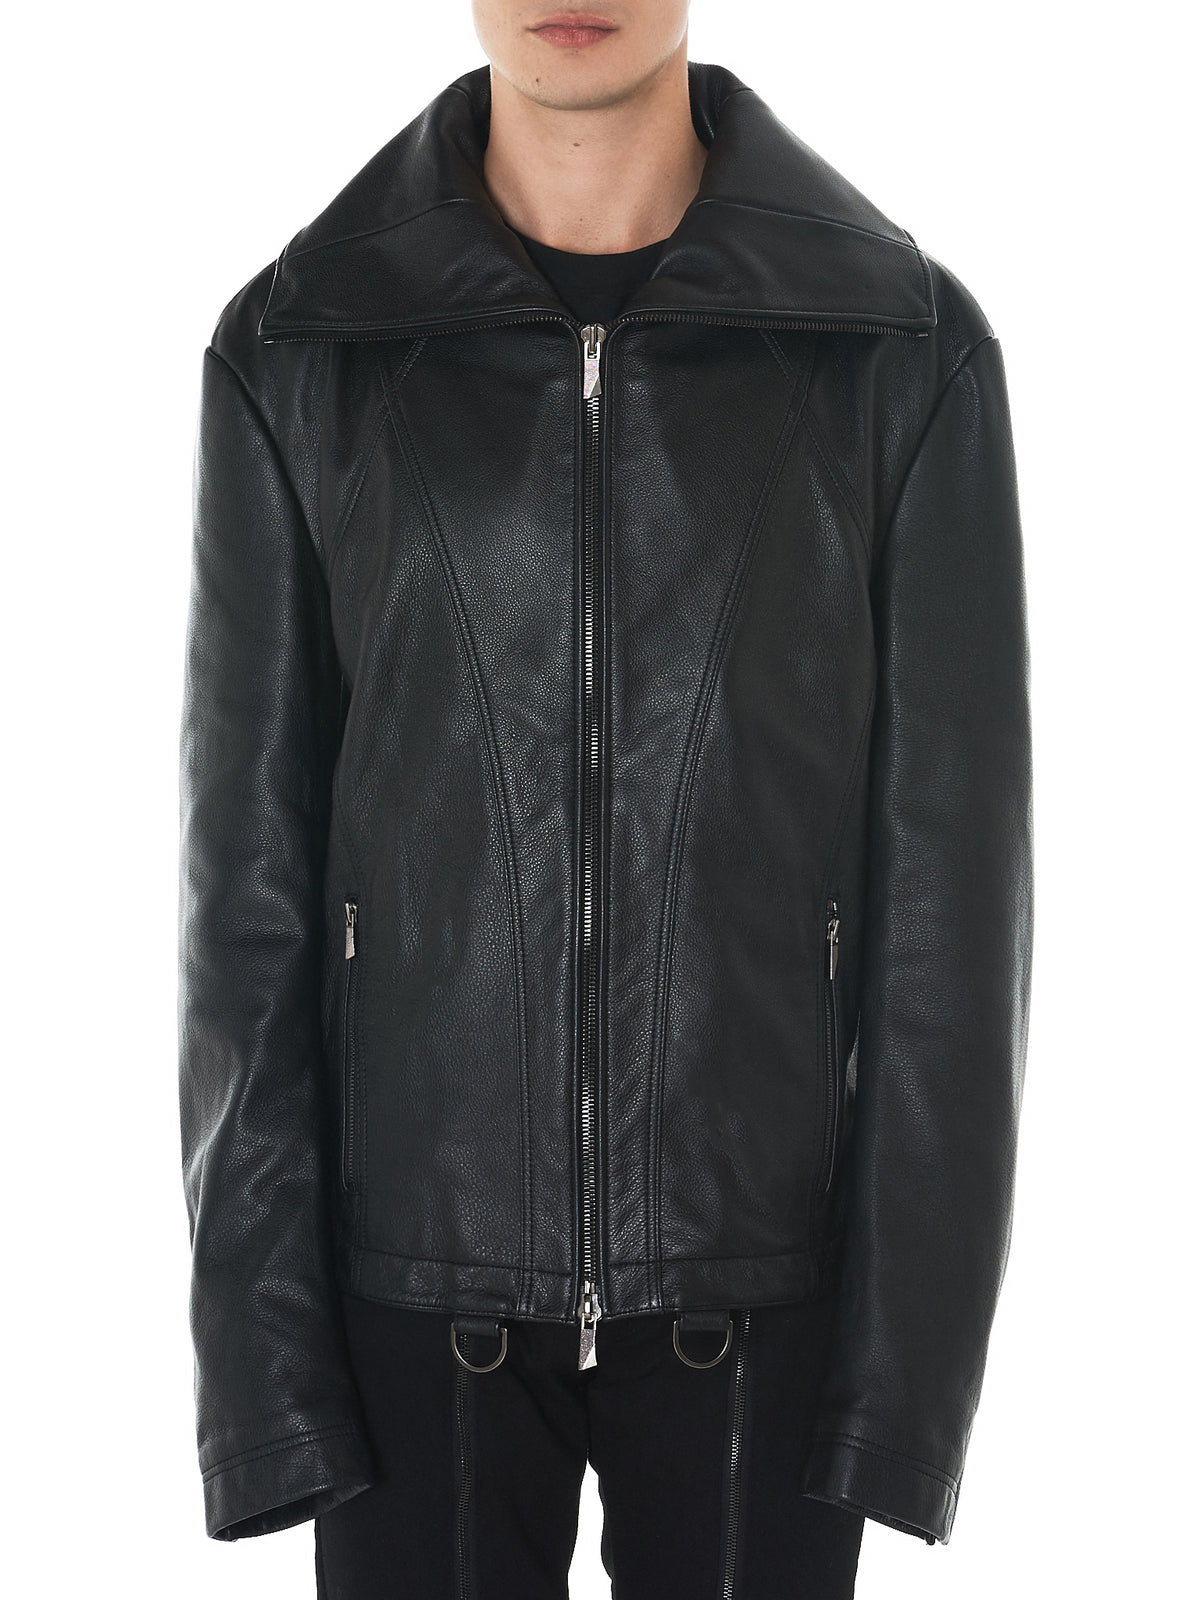 H Lorenzo -D. Gnak leather jacket front